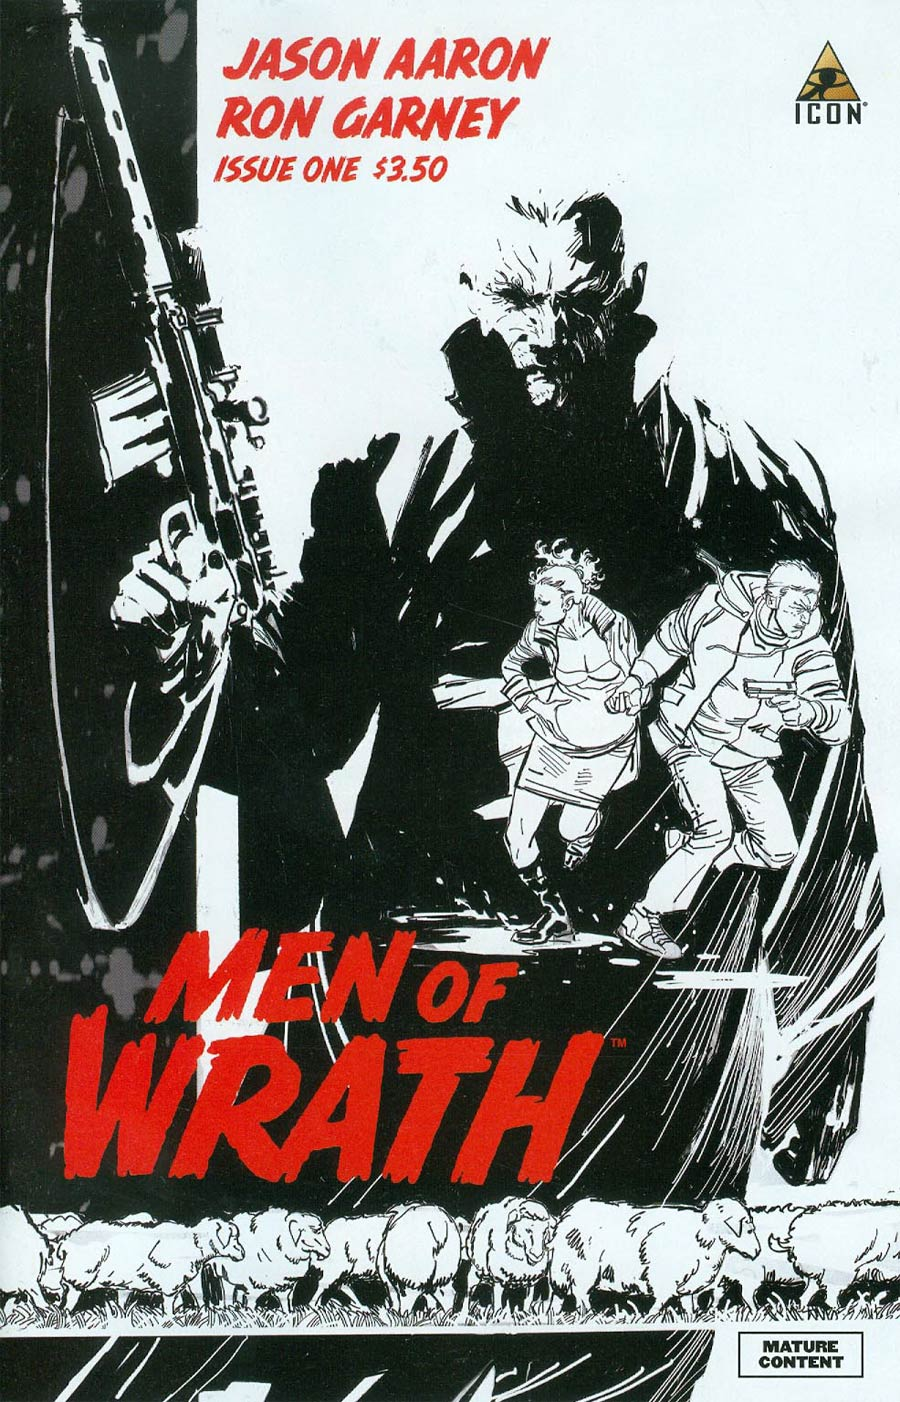 Men Of Wrath By Jason Aaron #1 Cover C 2nd Ptg Ron Garney Variant Cover